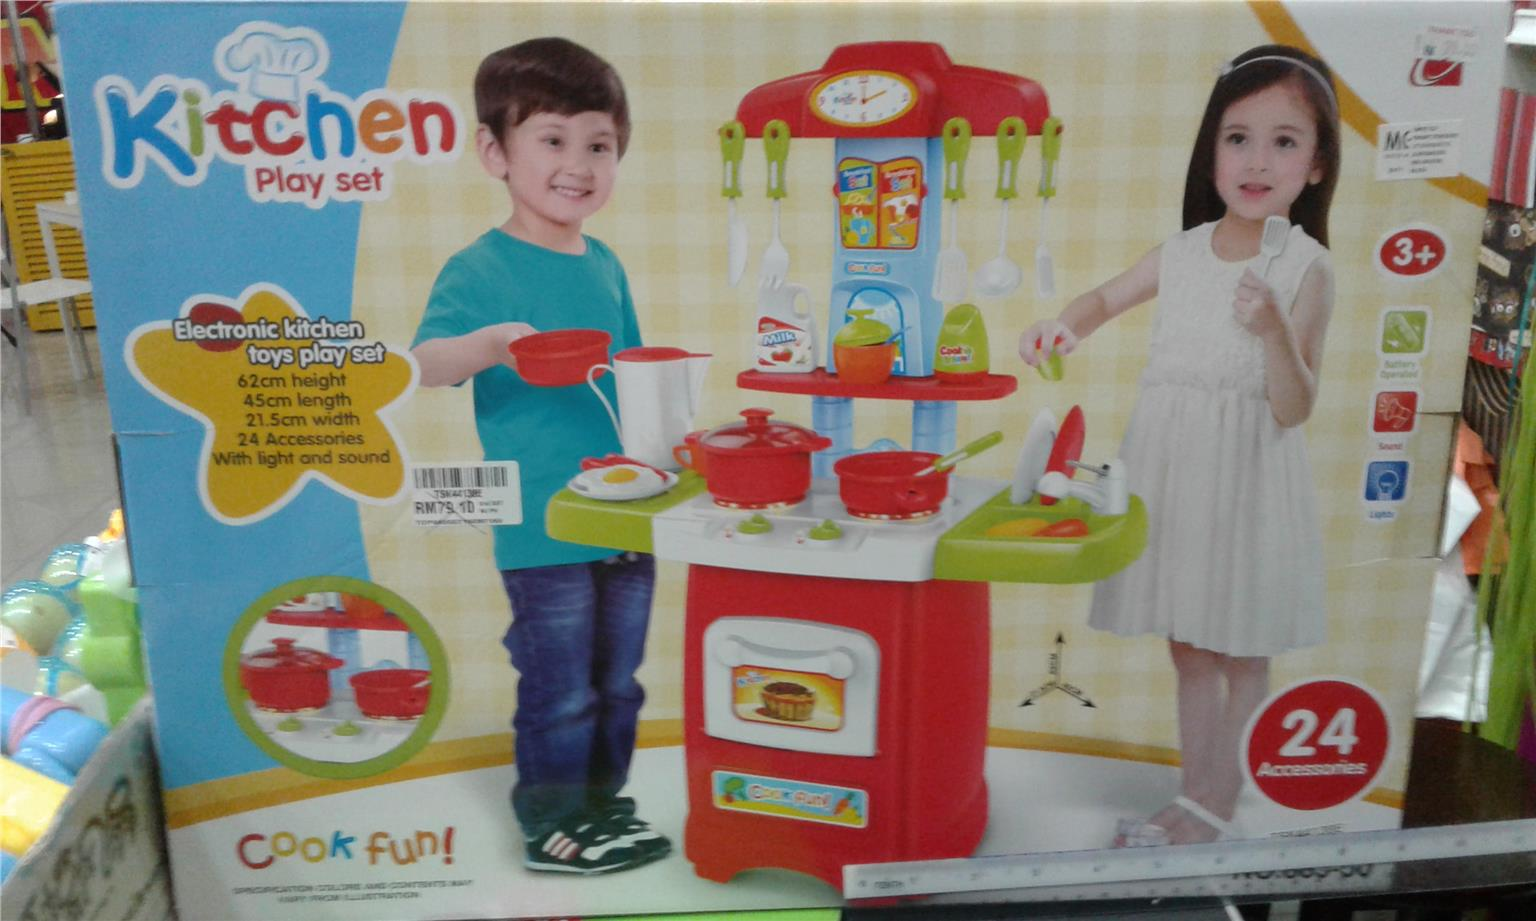 Kitchen Play Set for Kids